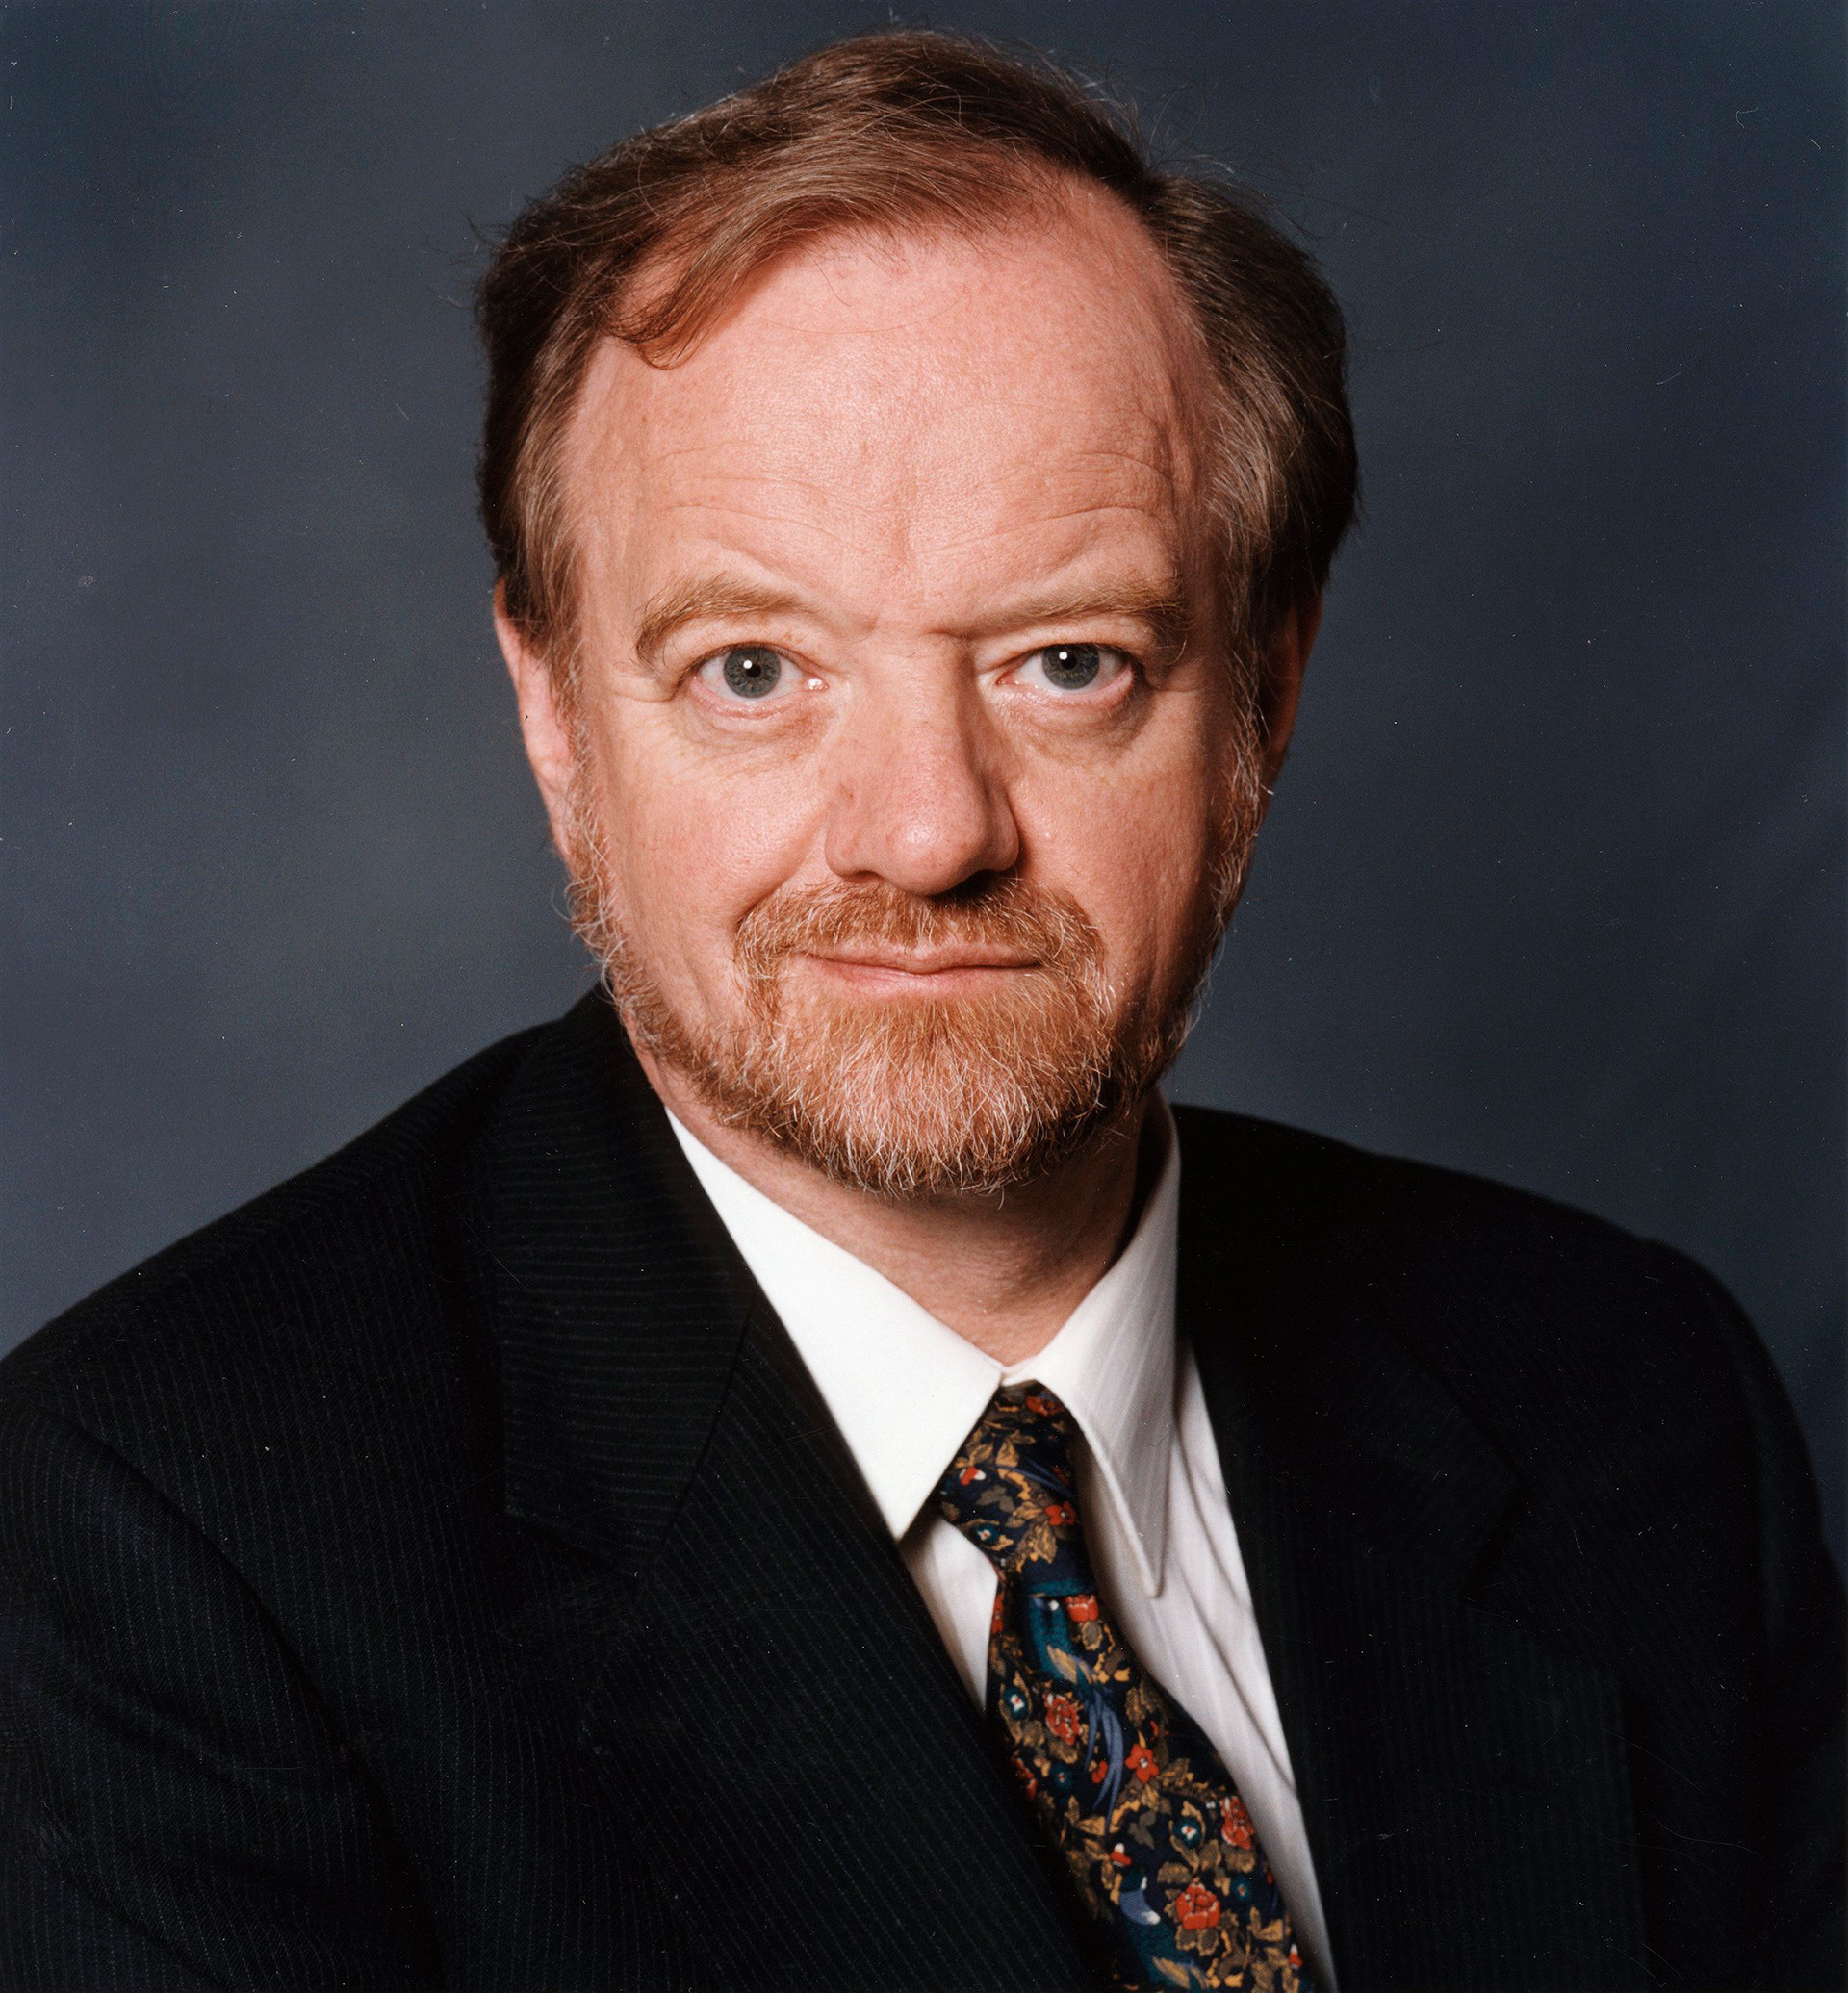 Robin Cook (1946 - 2005), British Labour Party politician, Foreign Secretary (1997 - 2001)